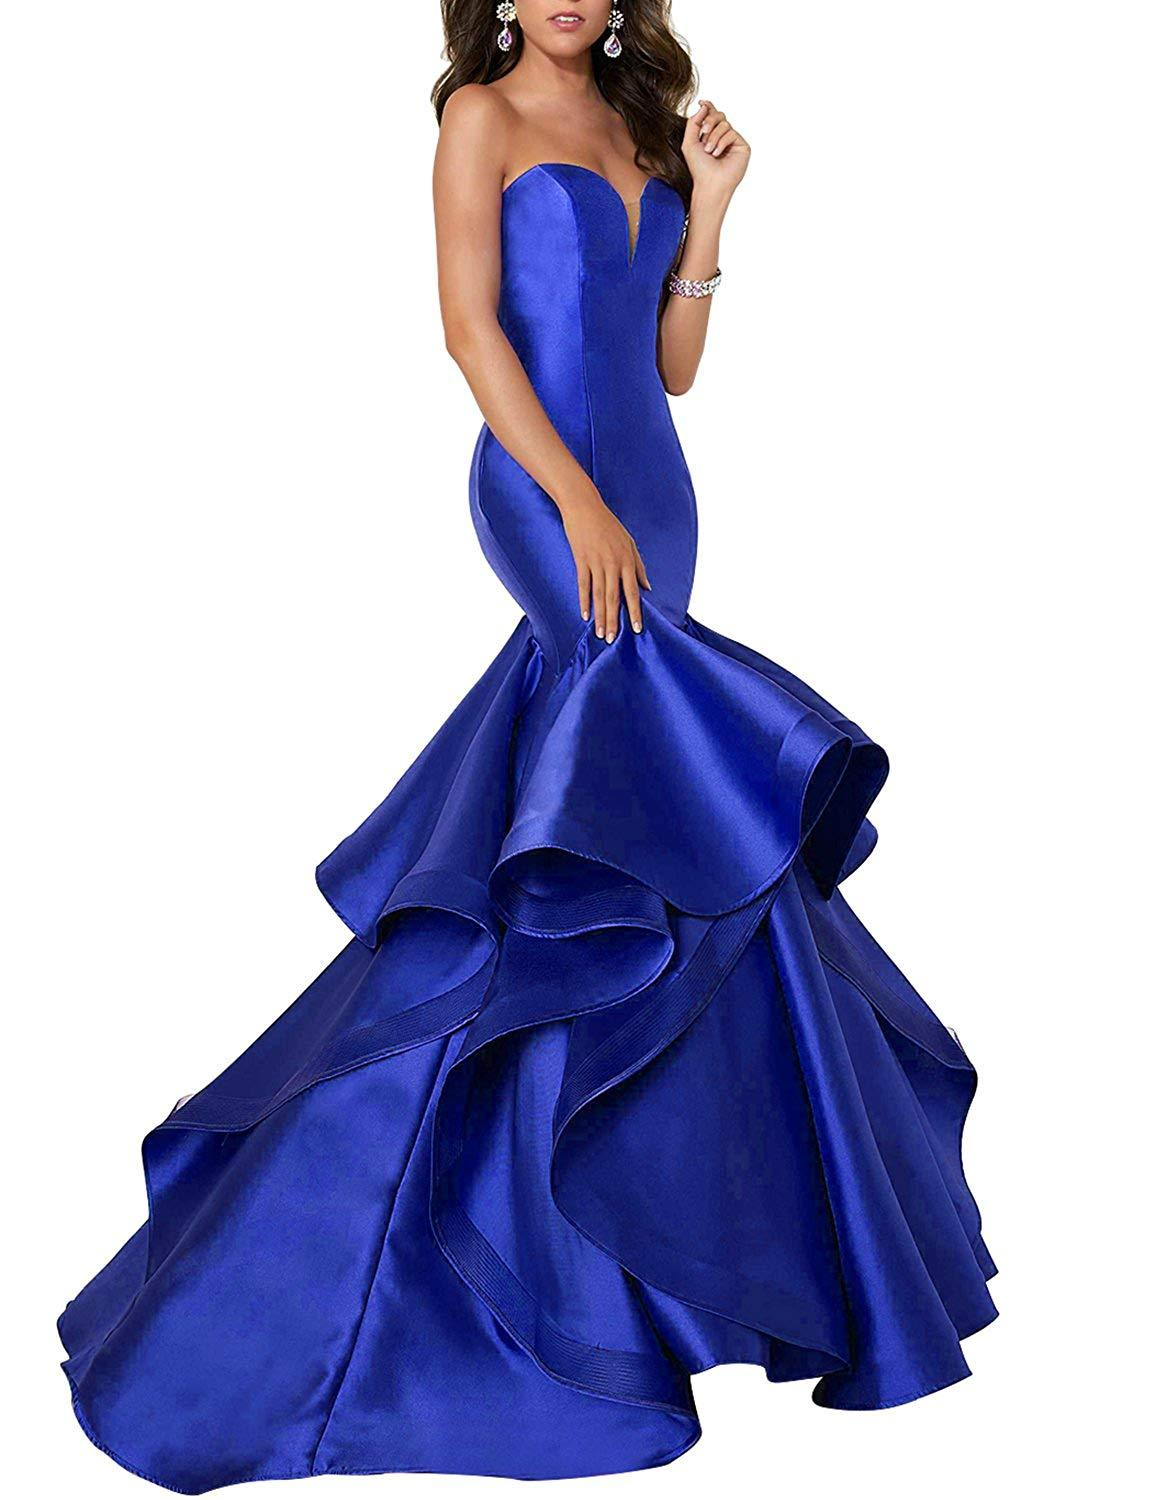 Sweetheart Mermaid Prom Dress Long Satin Ruffles Formal Party Gown Lace Up Back